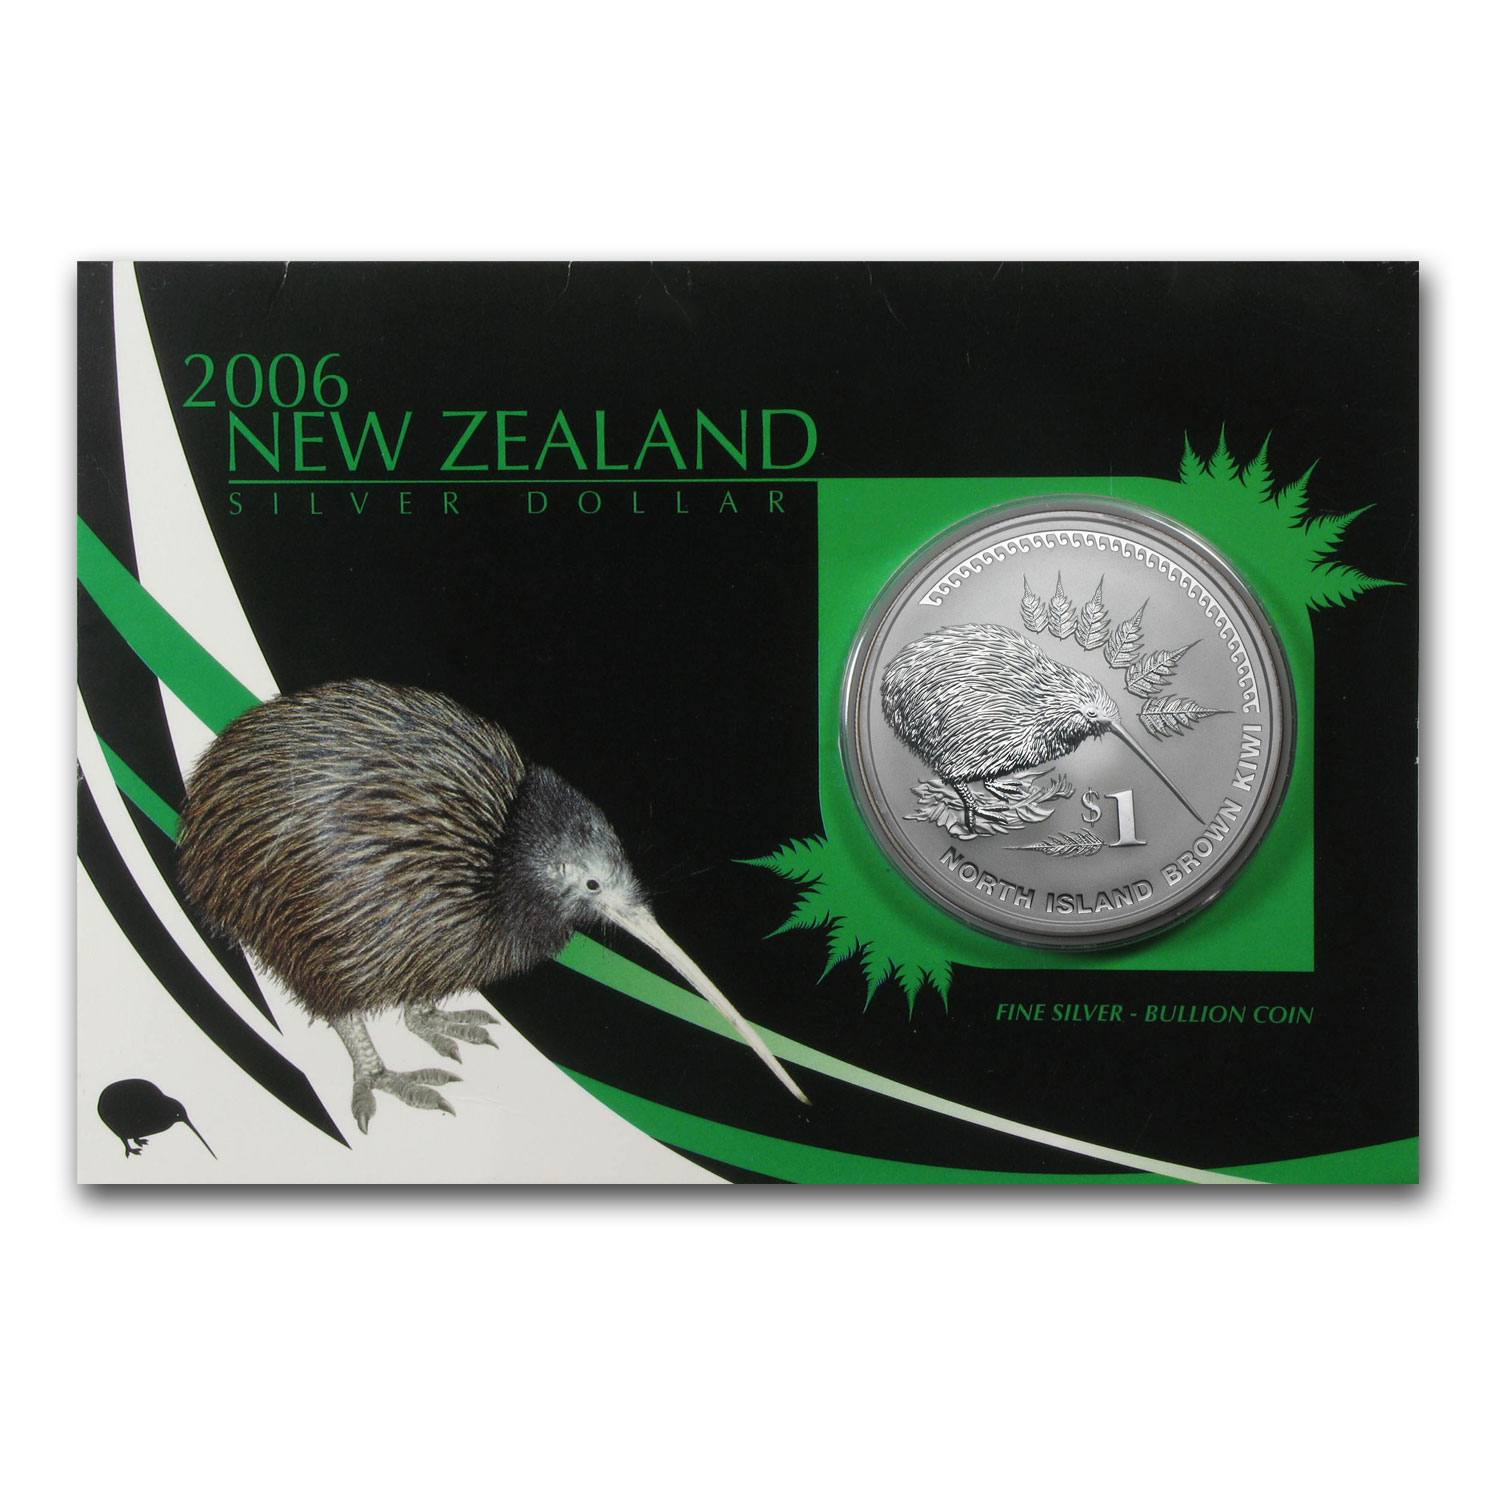 2006 1 oz Silver New Zealand $1 Kiwi Coin Display Card